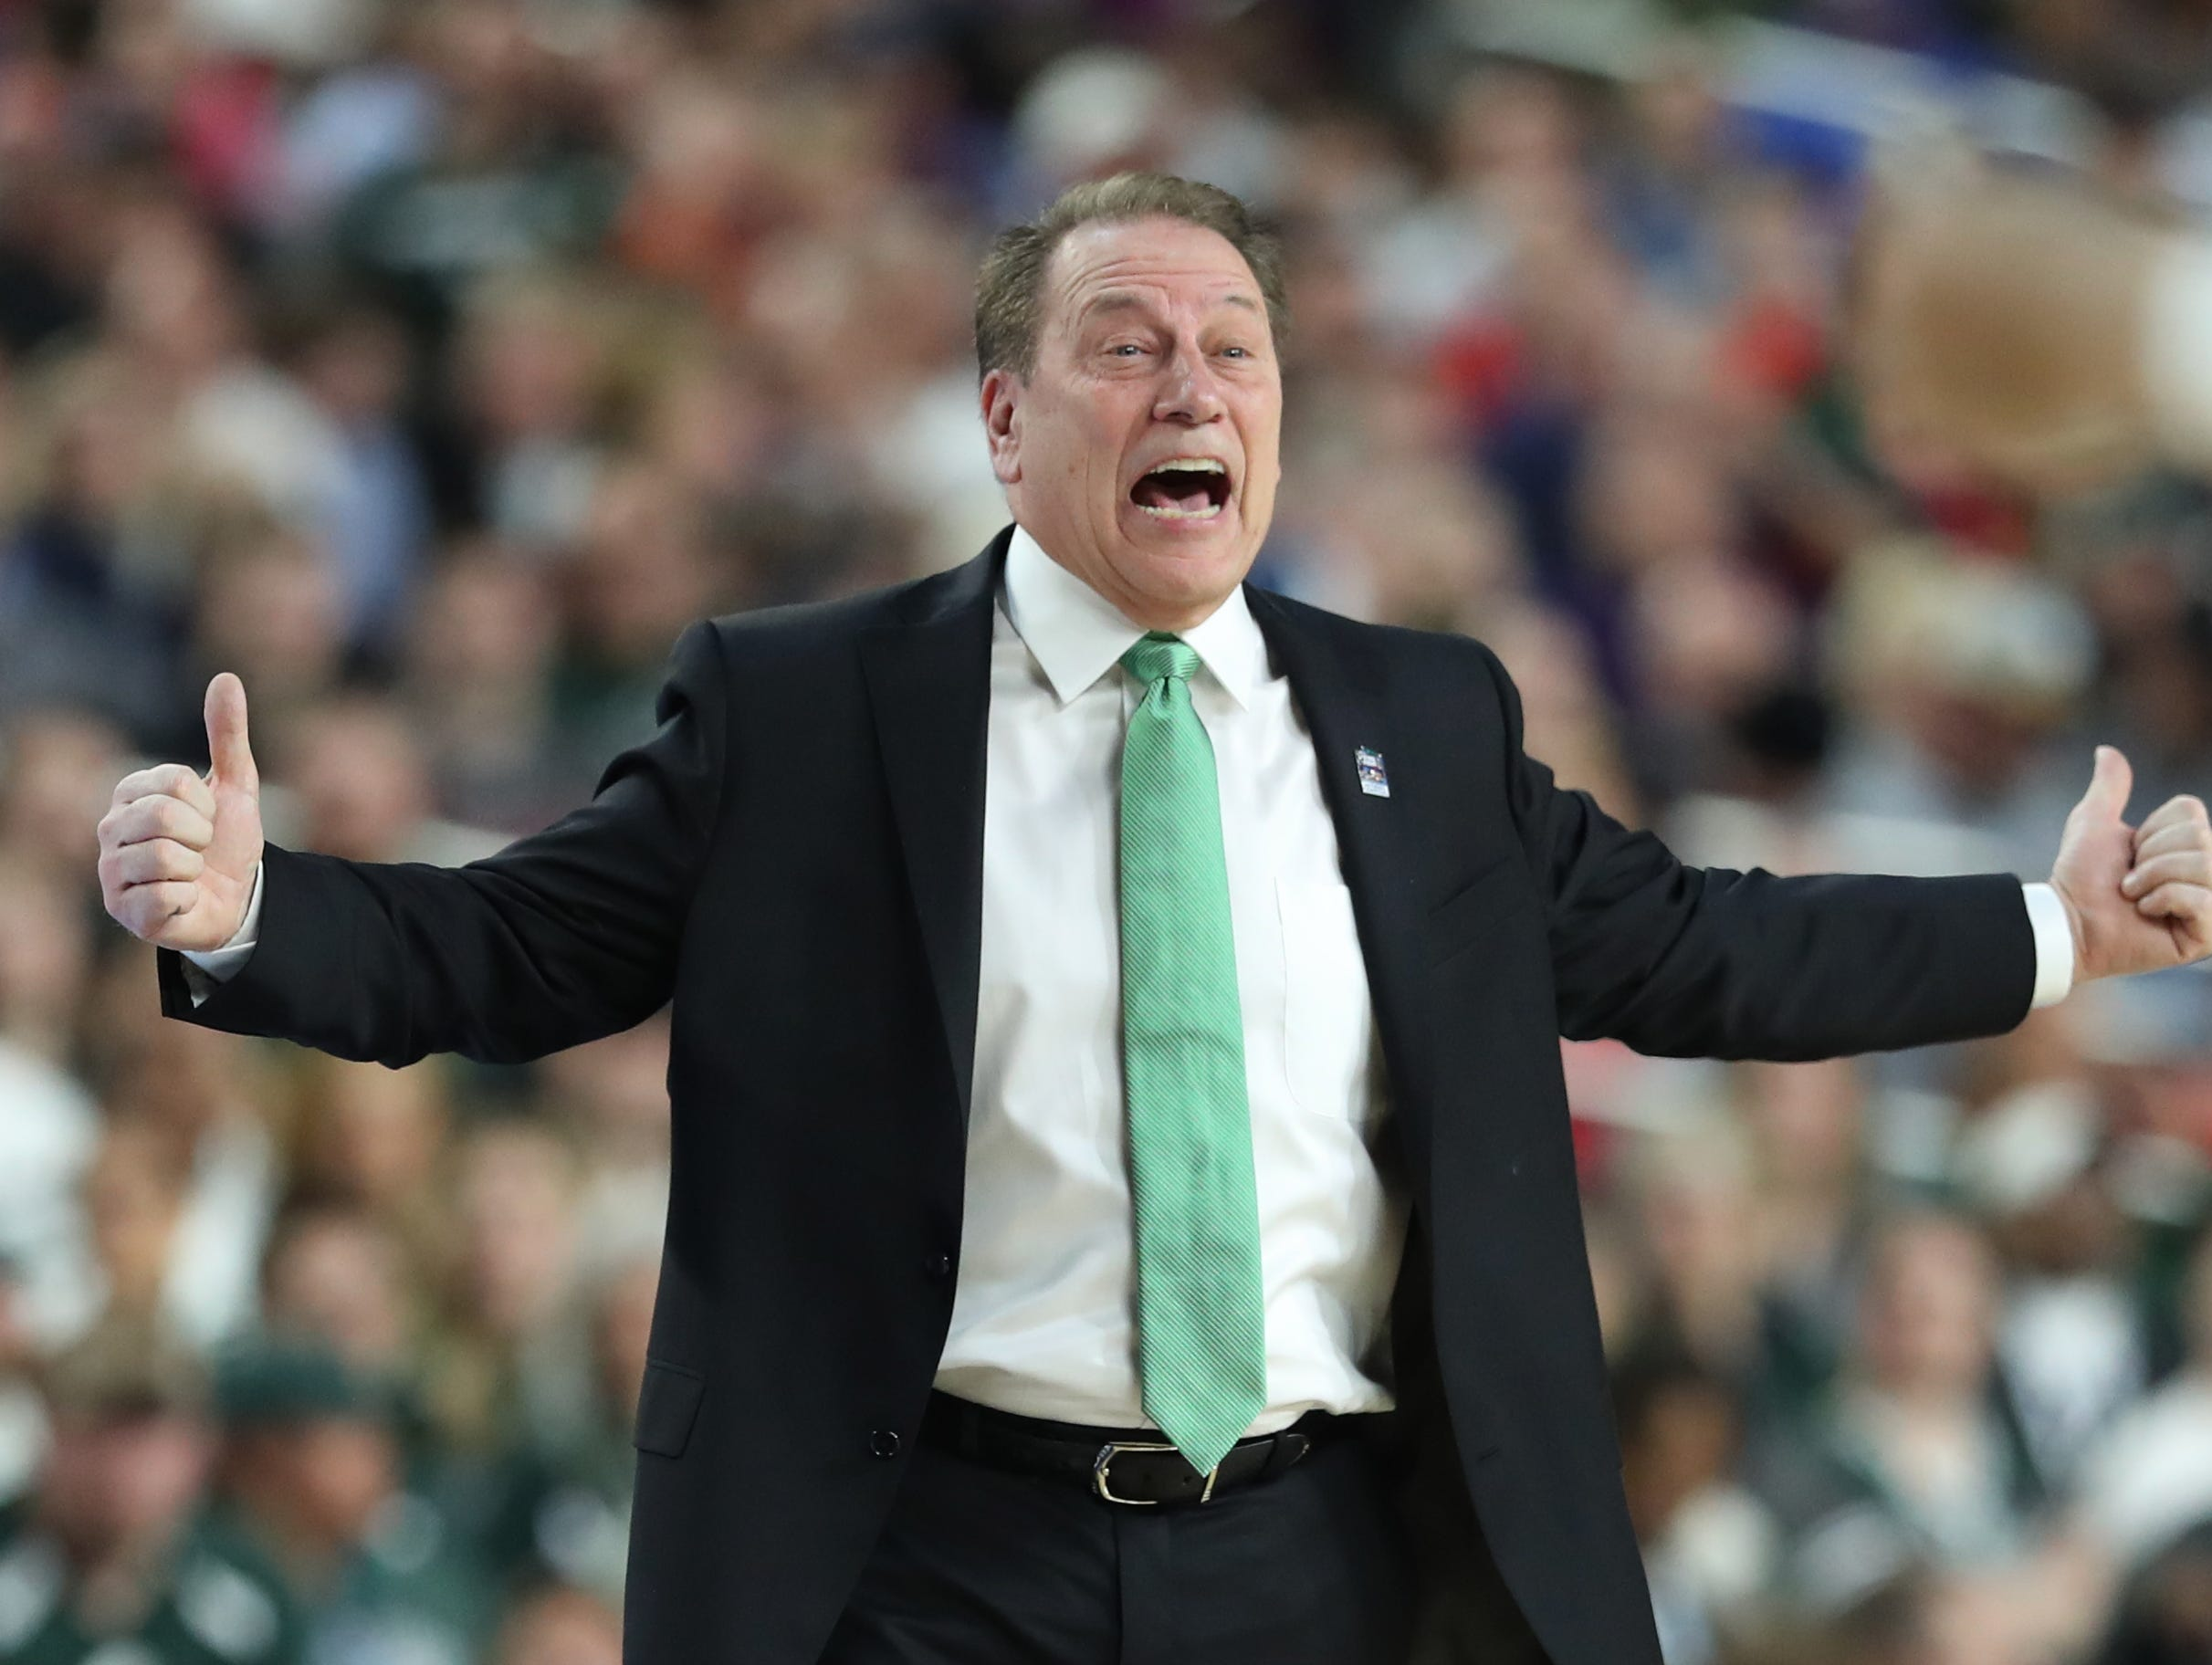 Michigan State head coach Tom Izzo shouts from the sidelines in the first half of the Spartan's Final Four game against Texas Tech at U.S. Bank Stadium in Minneapolis, Minnesota on Saturday, April 06, 2019.